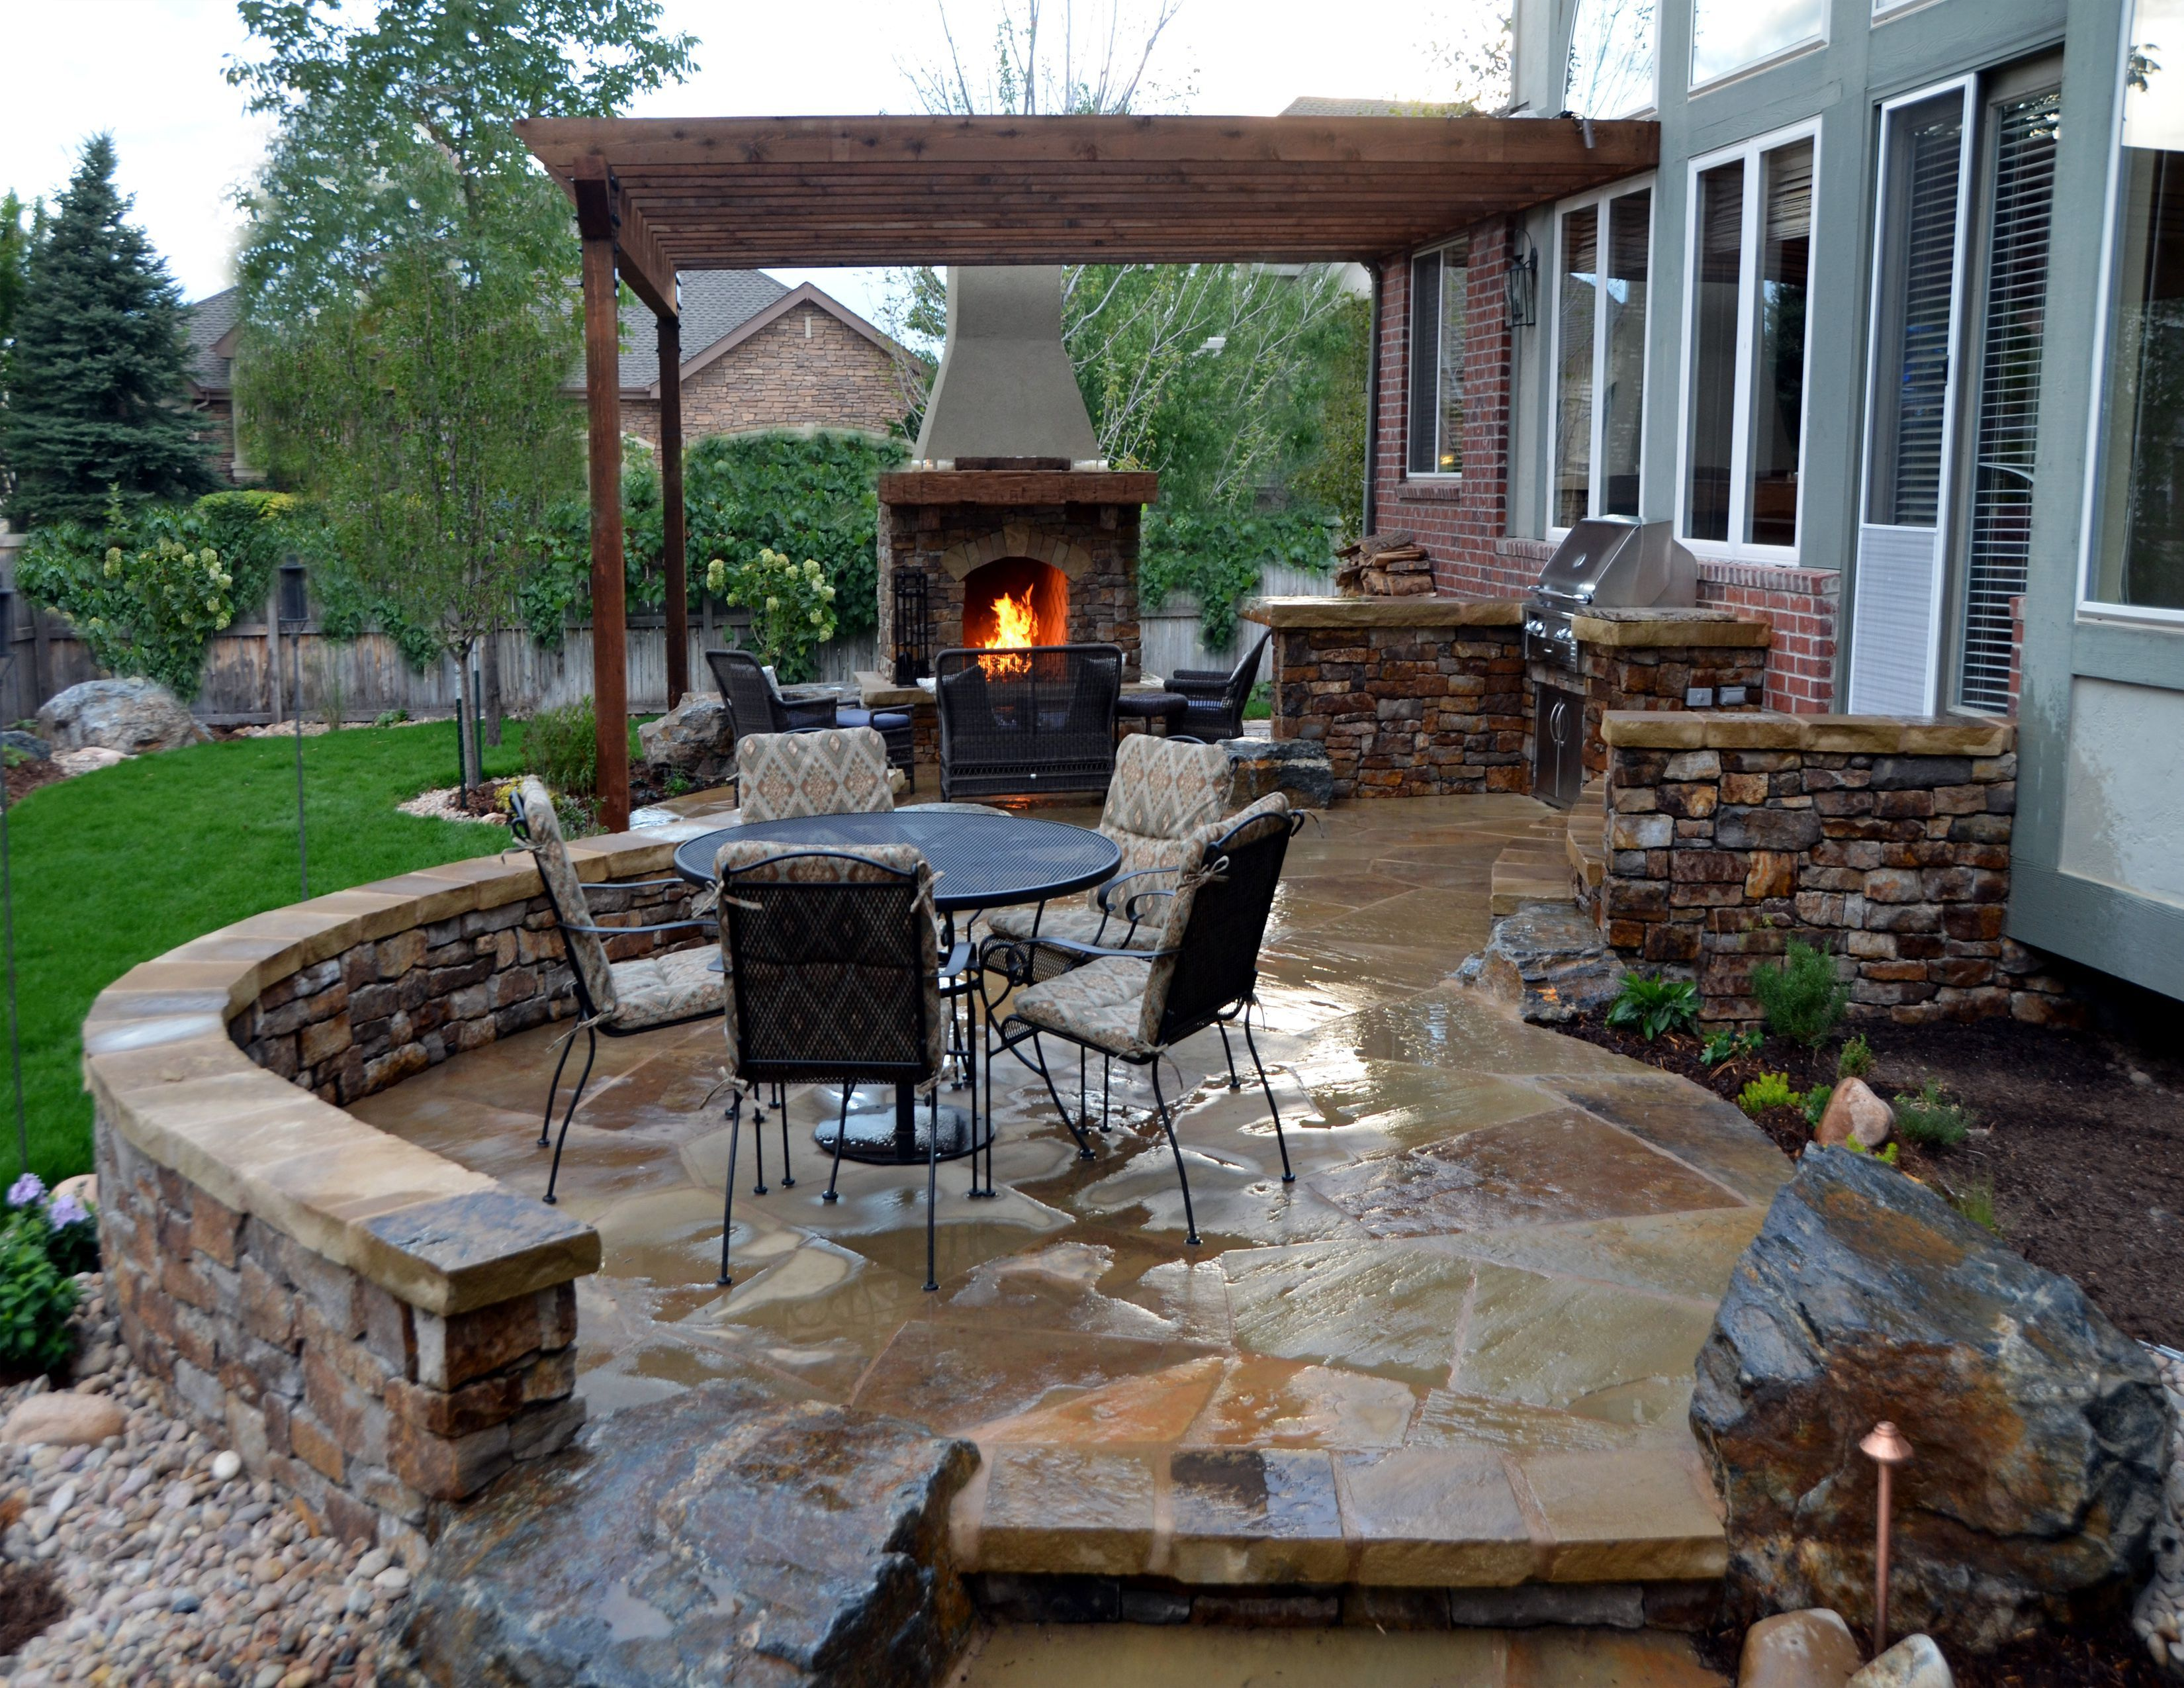 11a2c4bb328f6d7cbfcef6f45ae5d30b Top Result 50 Awesome Cost Of Outdoor Fireplace Picture 2018 Zat3